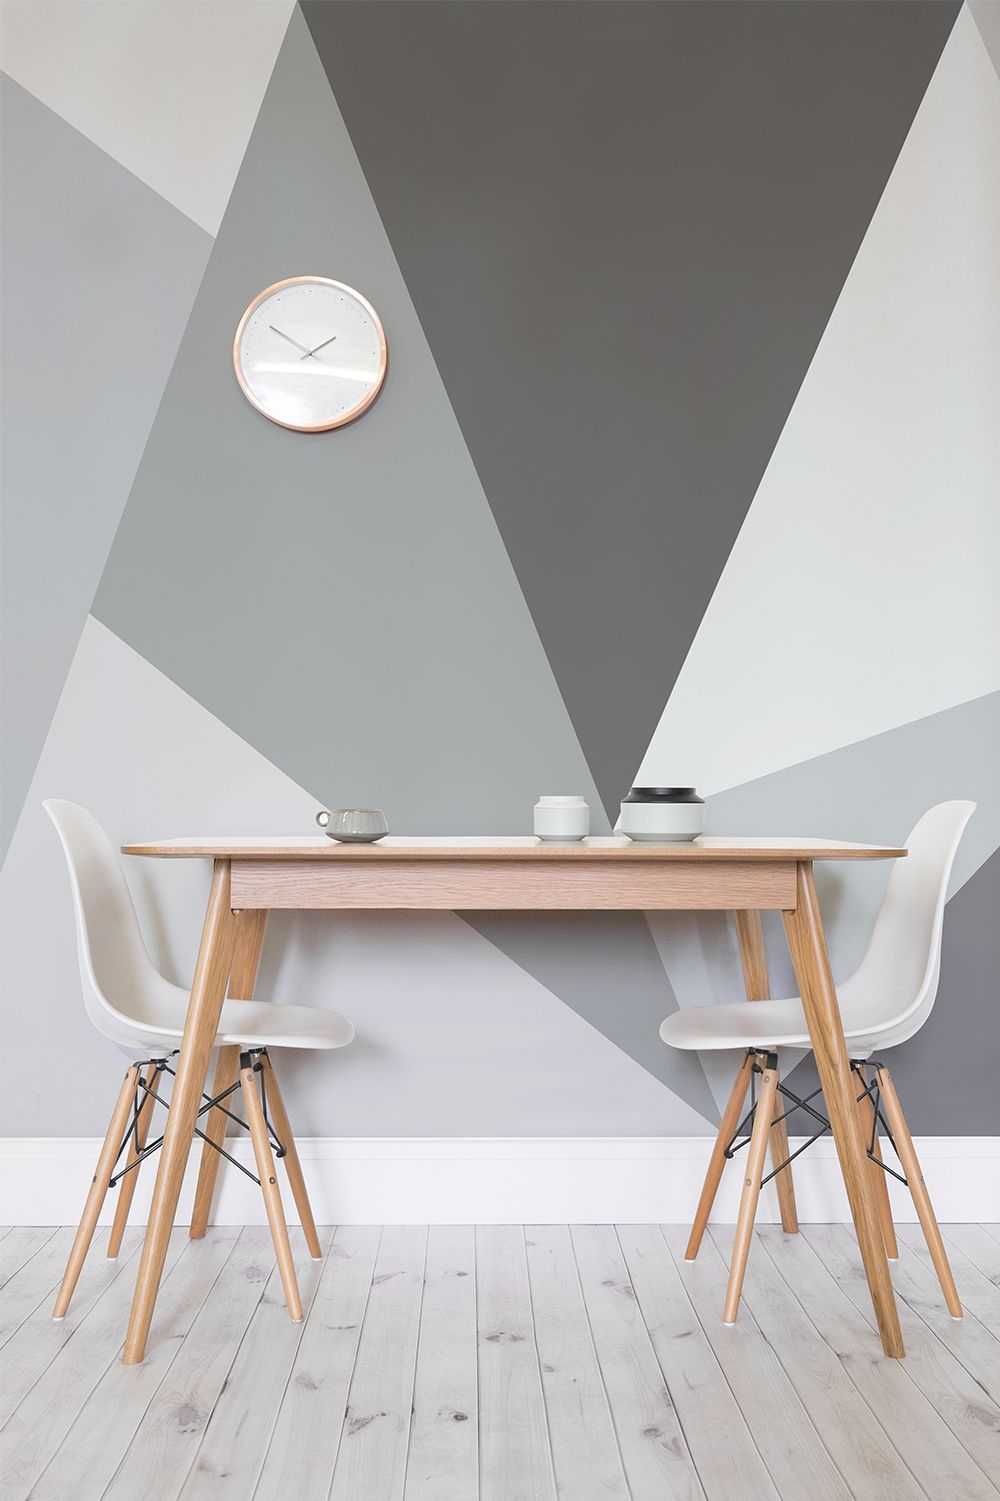 Jugendzimmer wandkunst want a modern twist on the traditional monochrome theme this giant